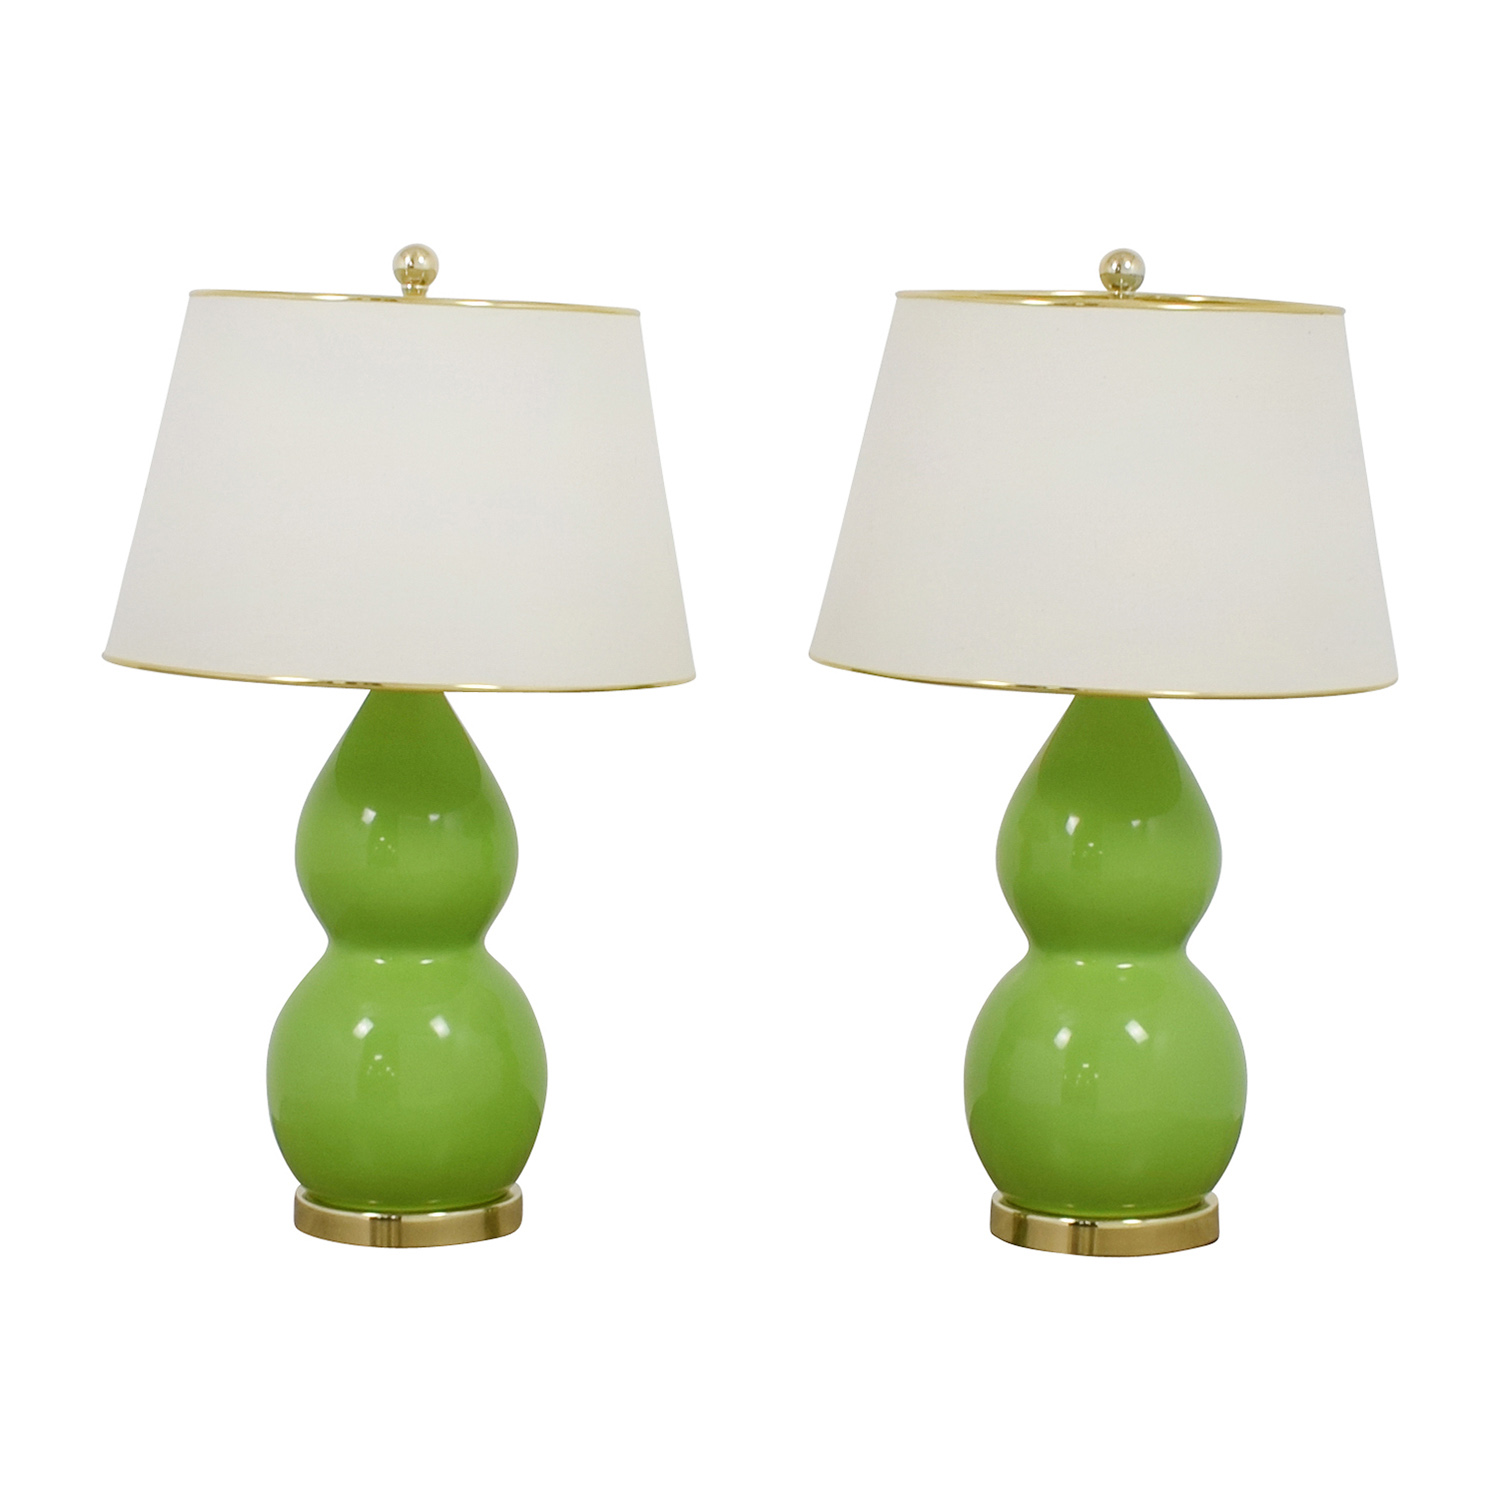 Safavieh Eva Double Green Table Lamps, Set of Two Decor